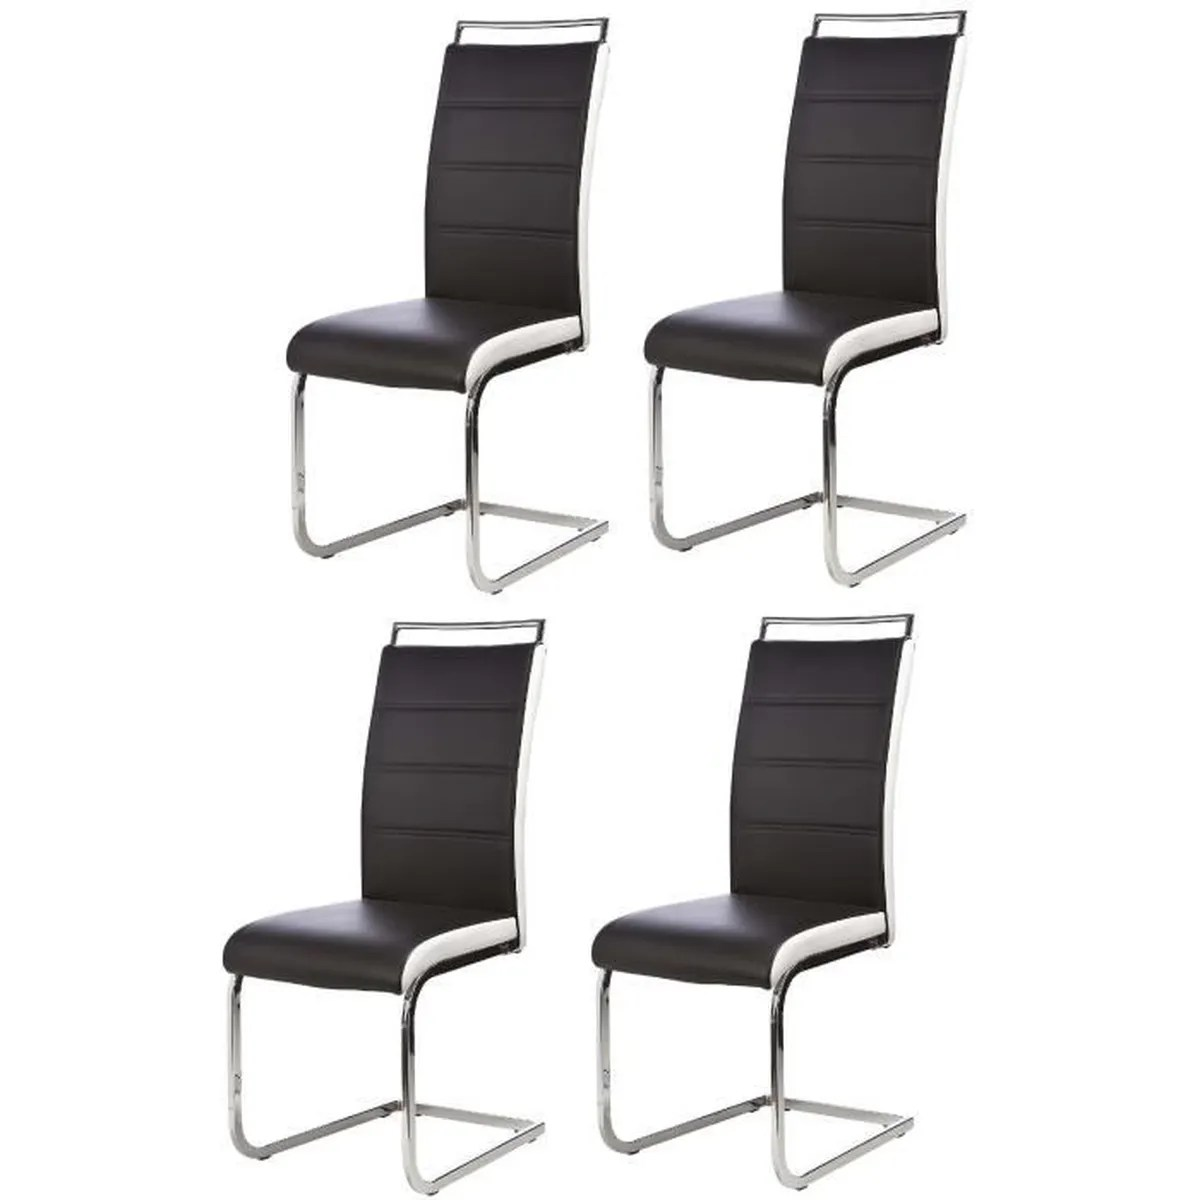 De Salon Noir Dylan Lot De 4 Chaises Salon Noir Blanc